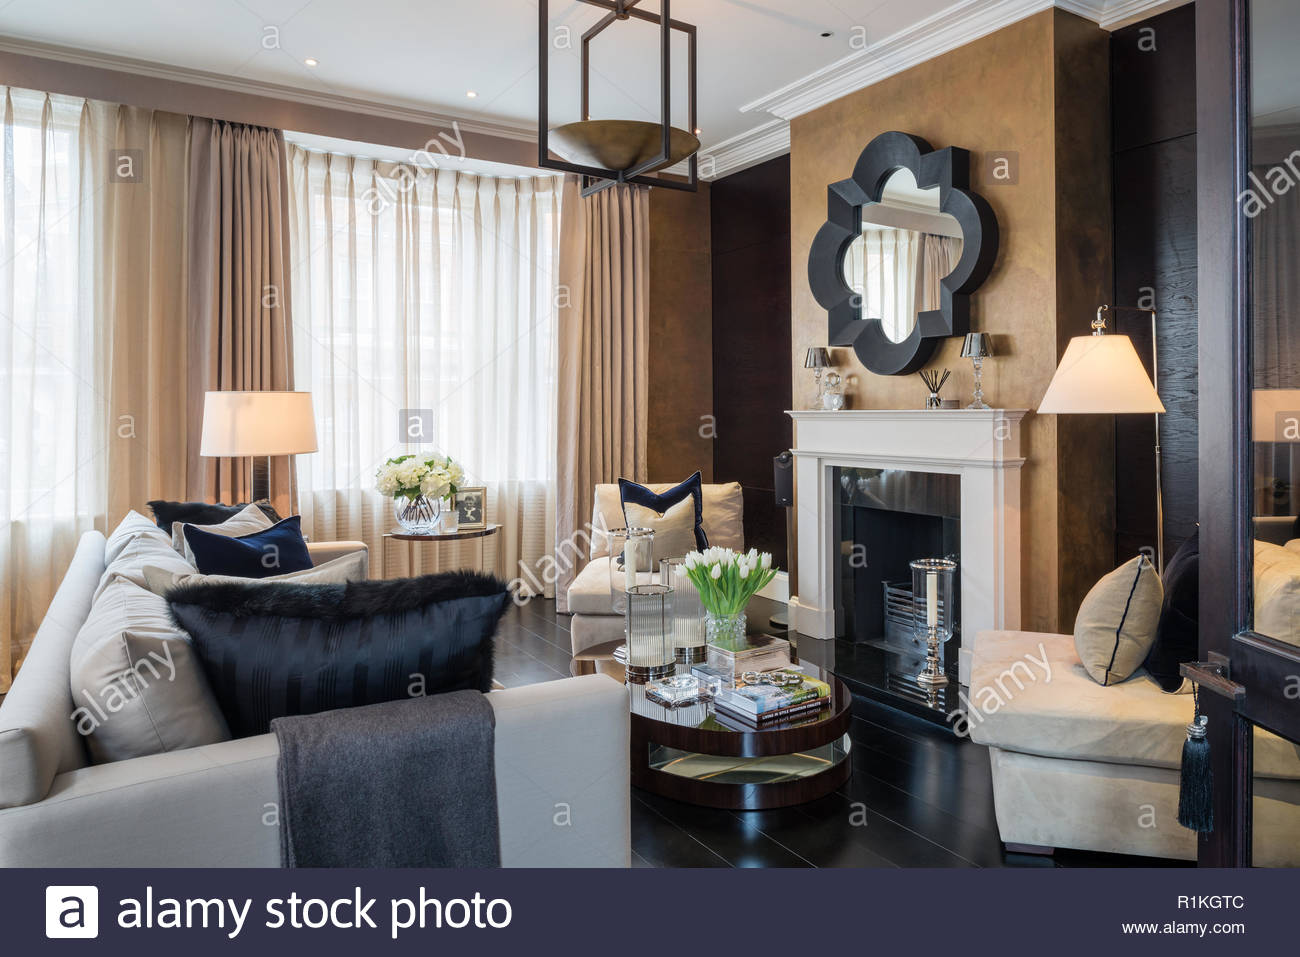 masculine window treatments masculine style living room with fireplace stock image house room curtains closed photos